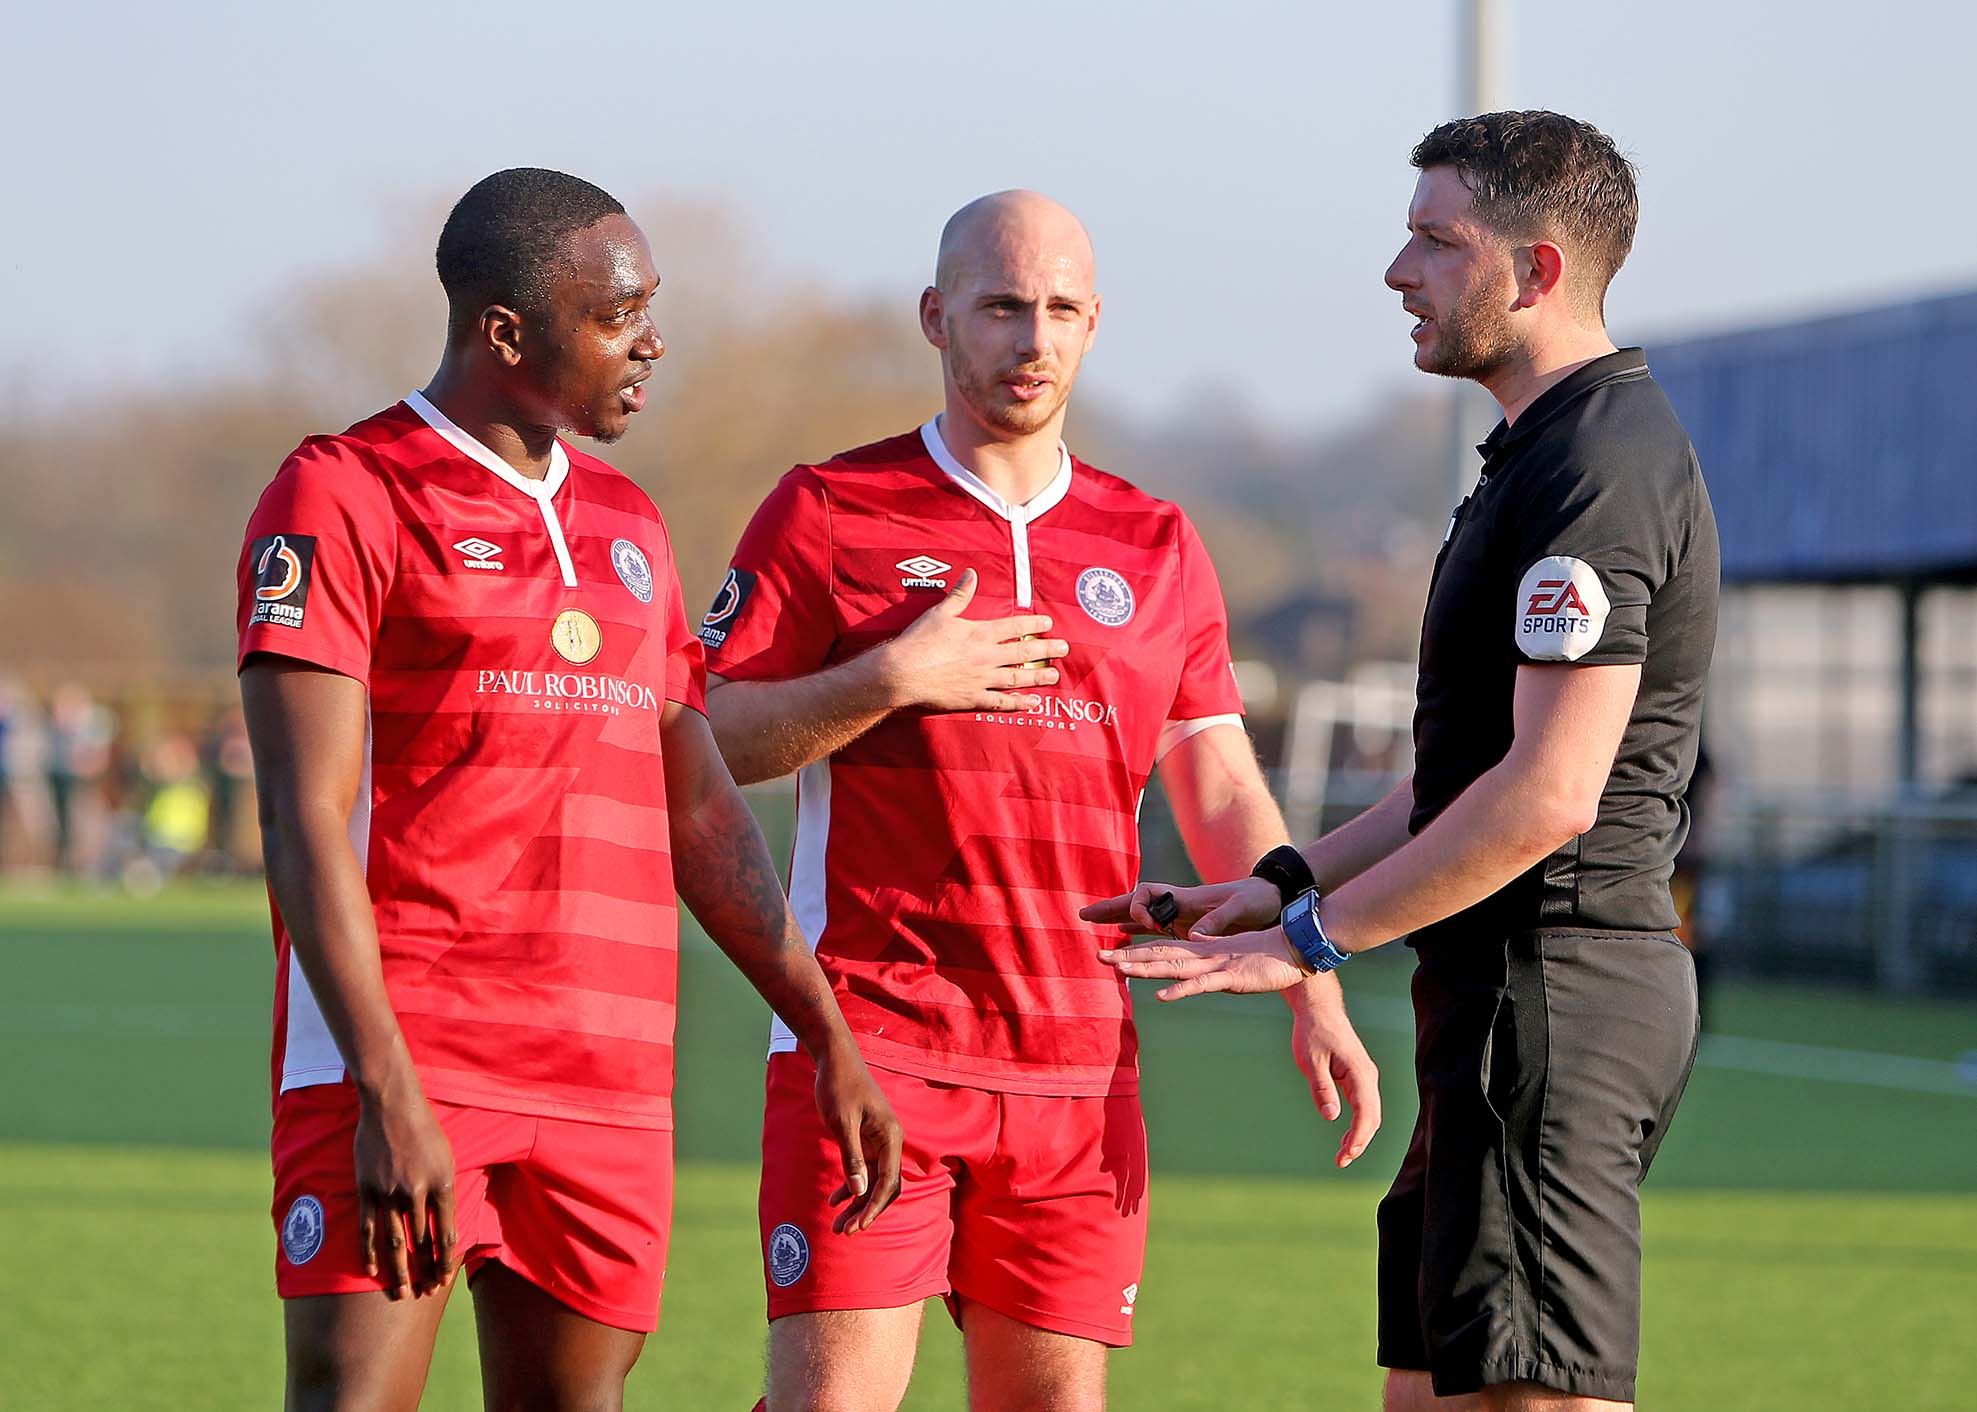 Oxford-City-23rd-February-2019-28 - Billericay Town FC